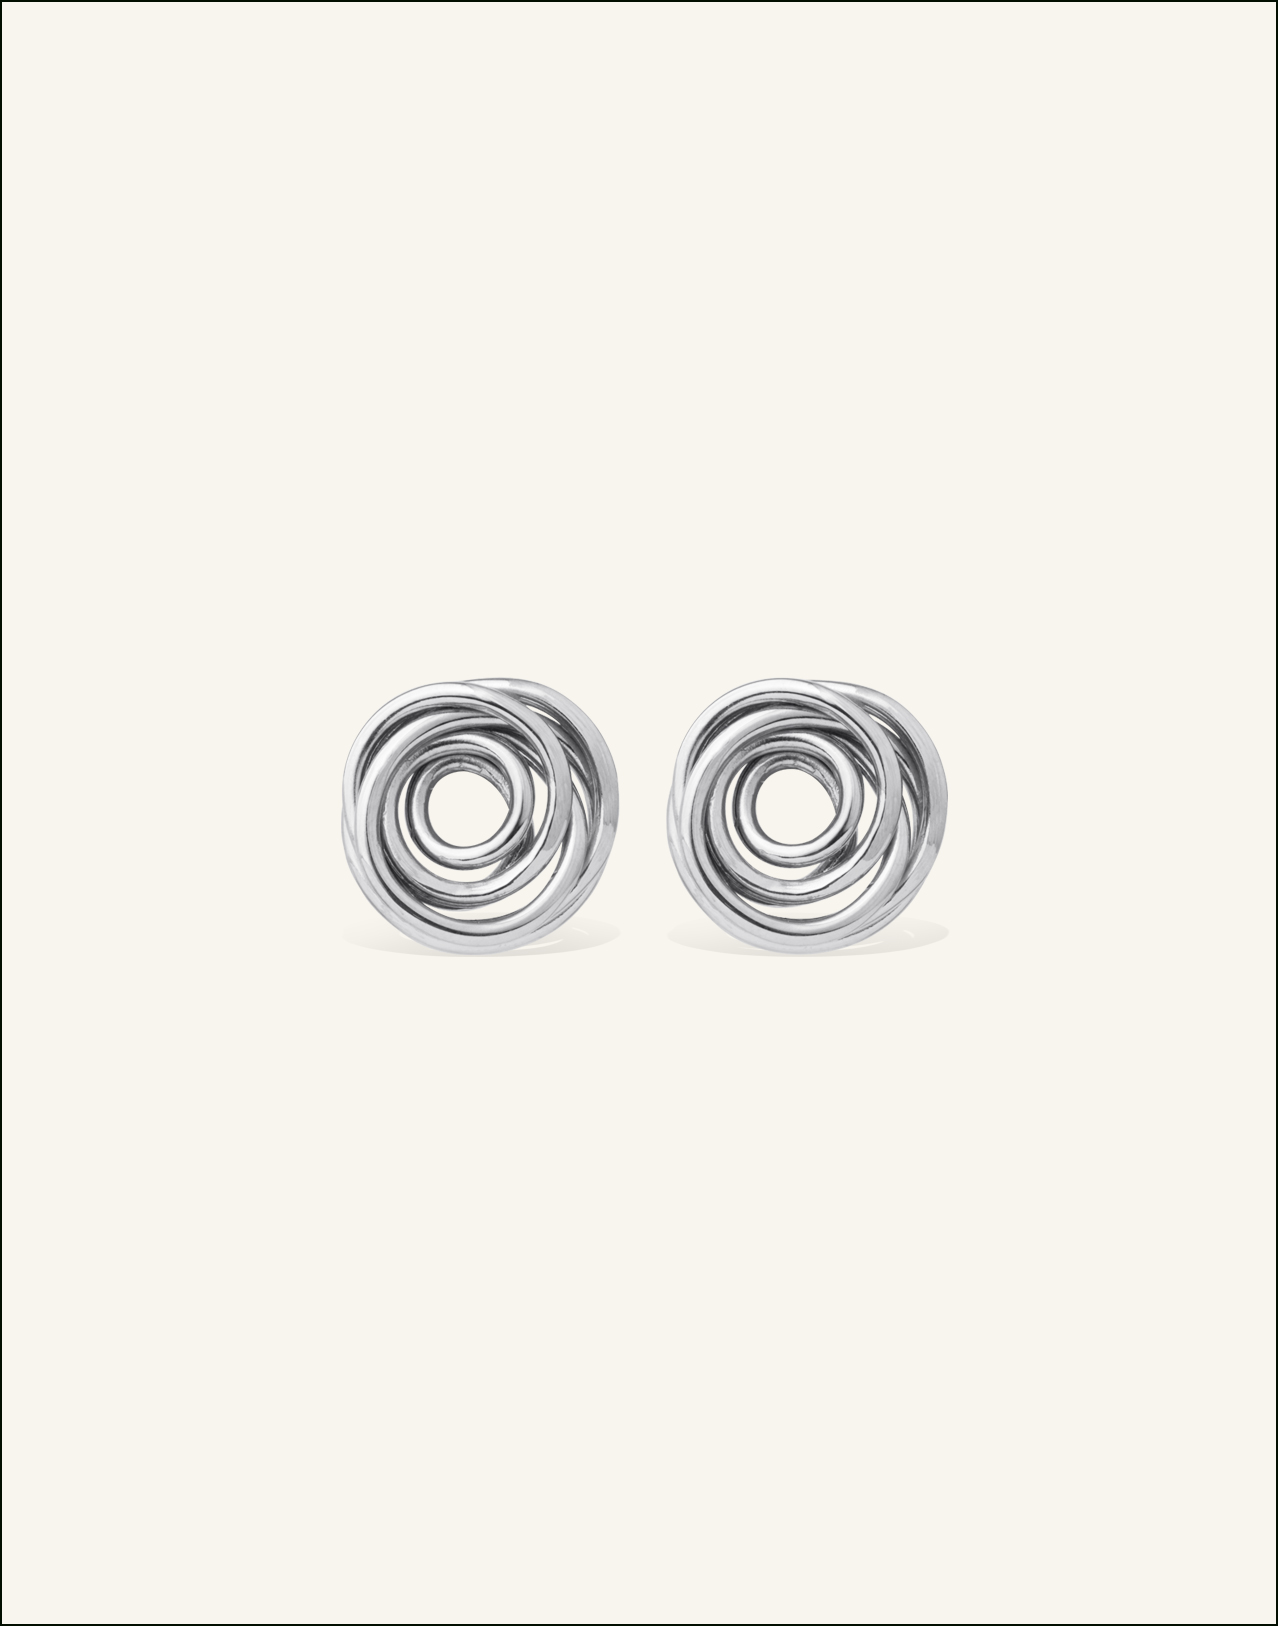 Completedworks-Silver-Earrings-Hotel-Matisse-1-1.jpg